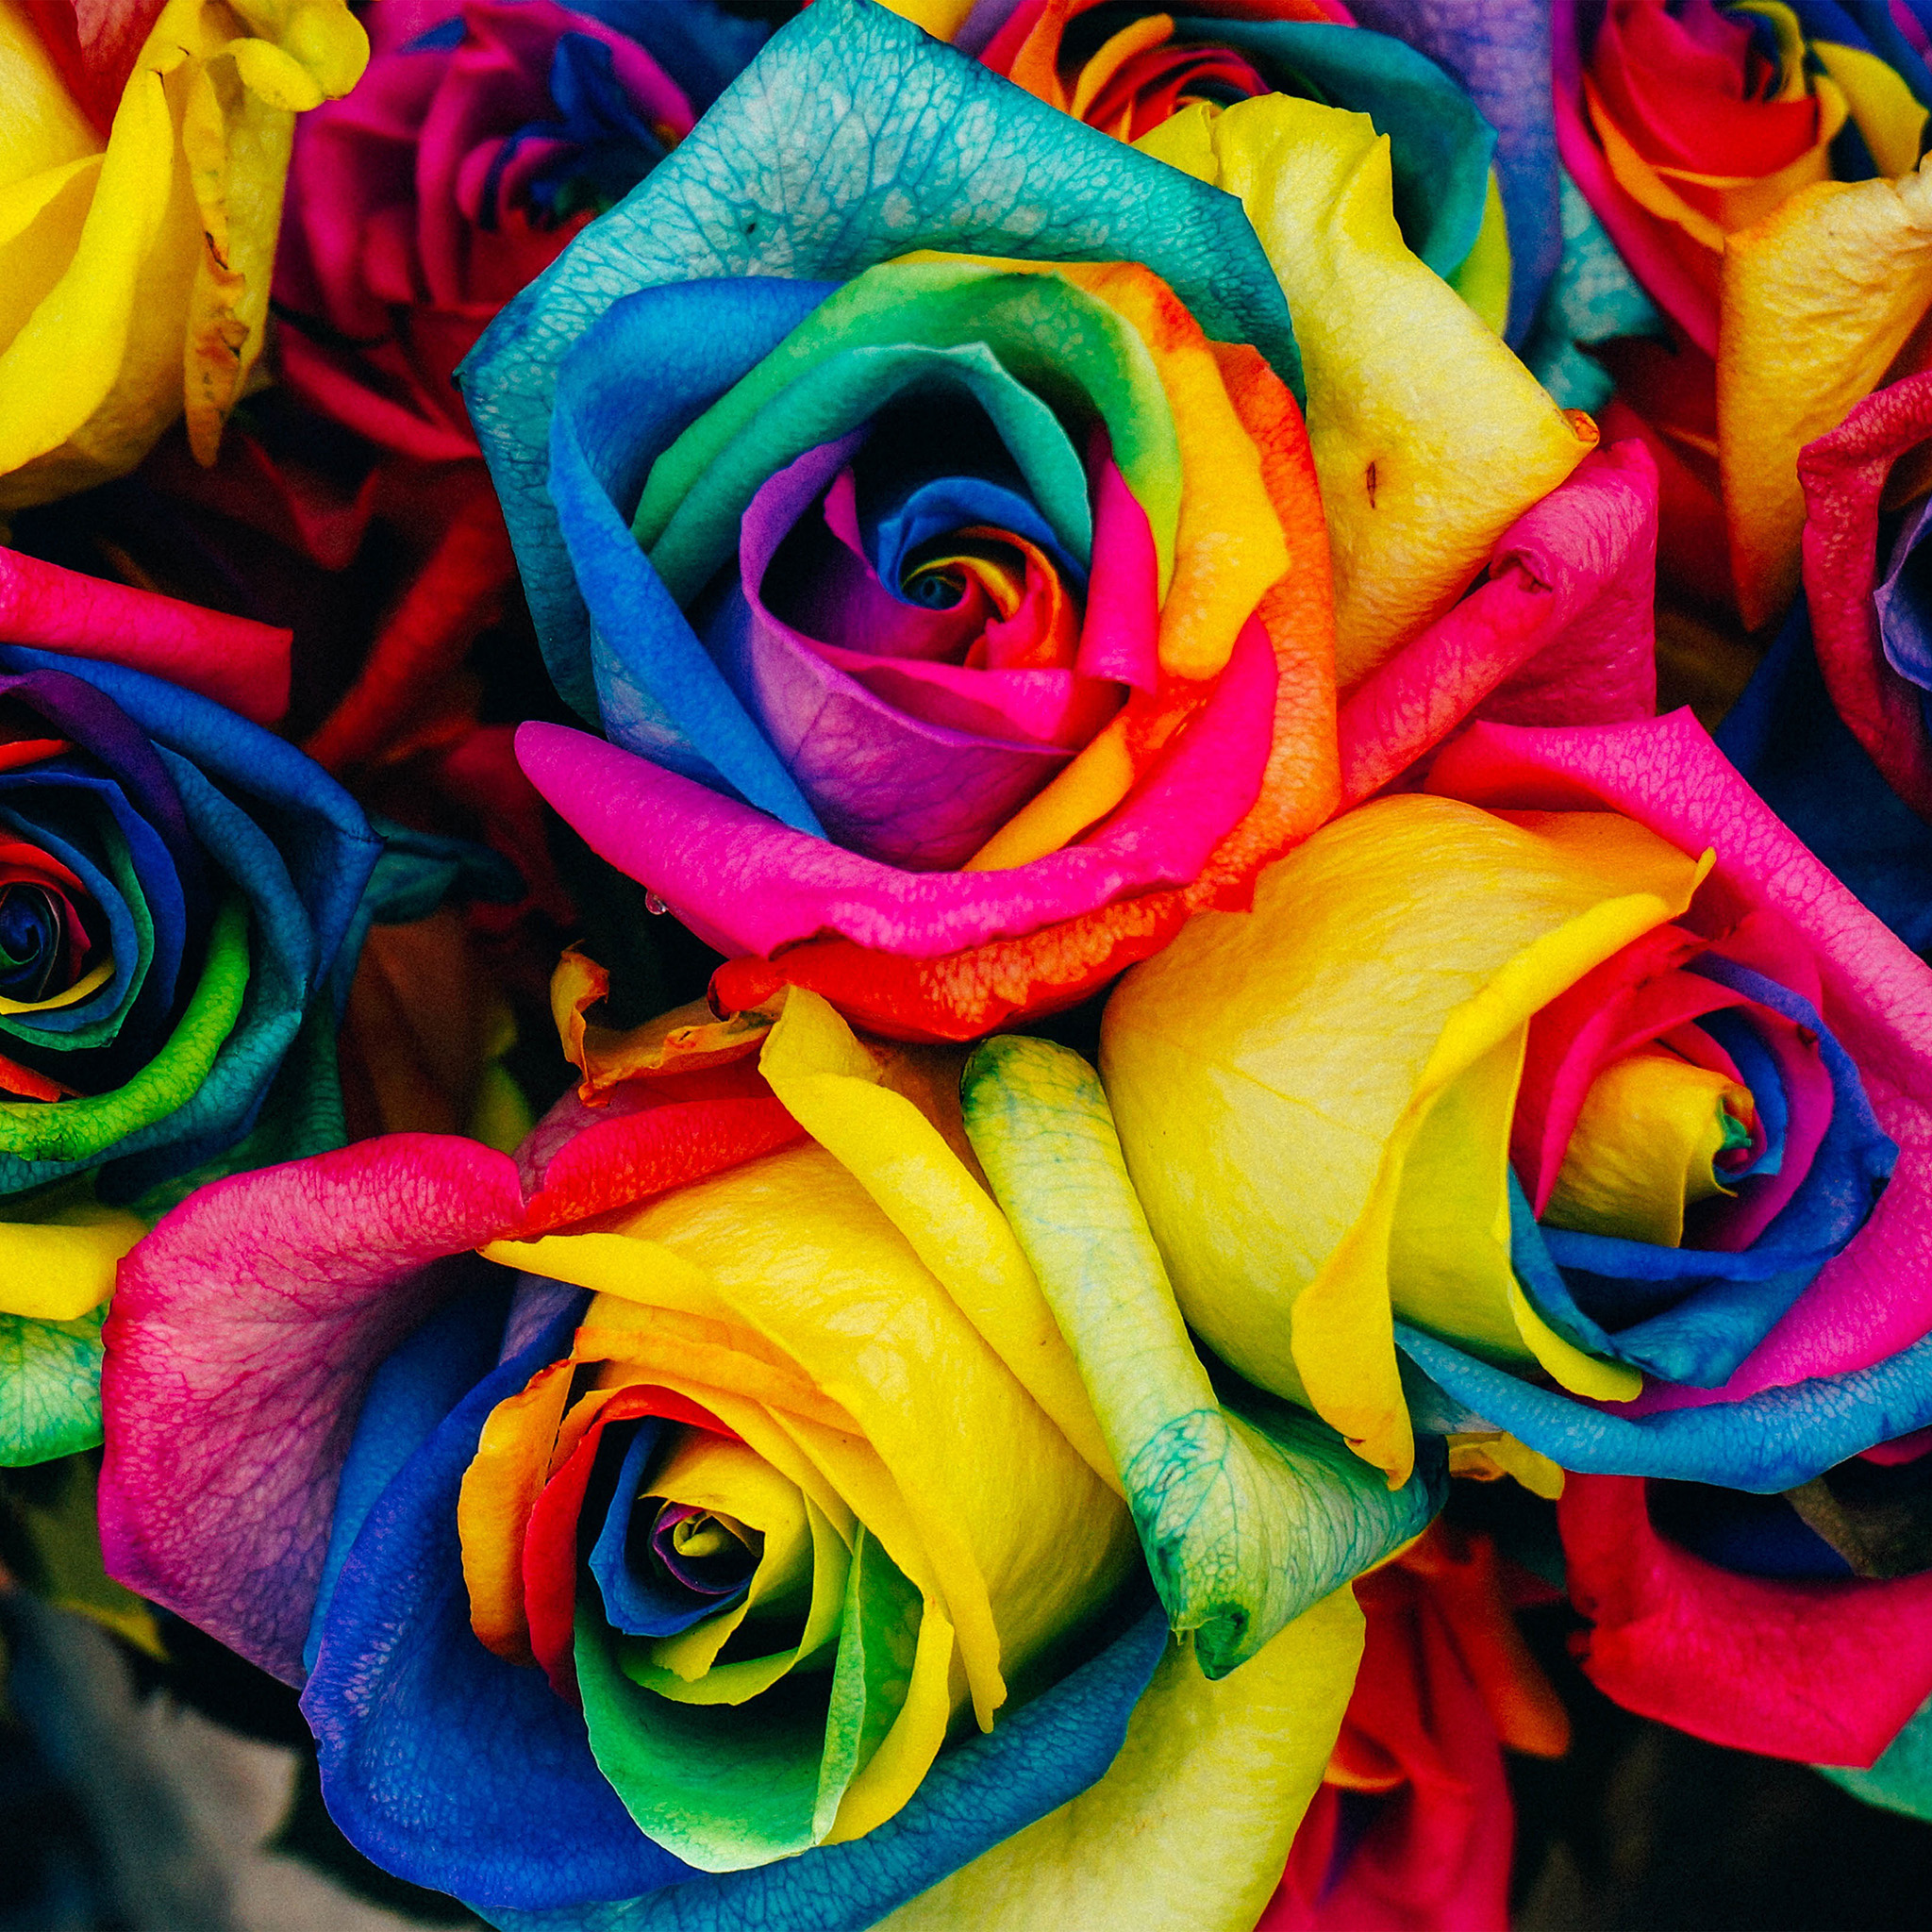 As98 flower rose color rainbow art nature wallpaper for Rainbow colored rose